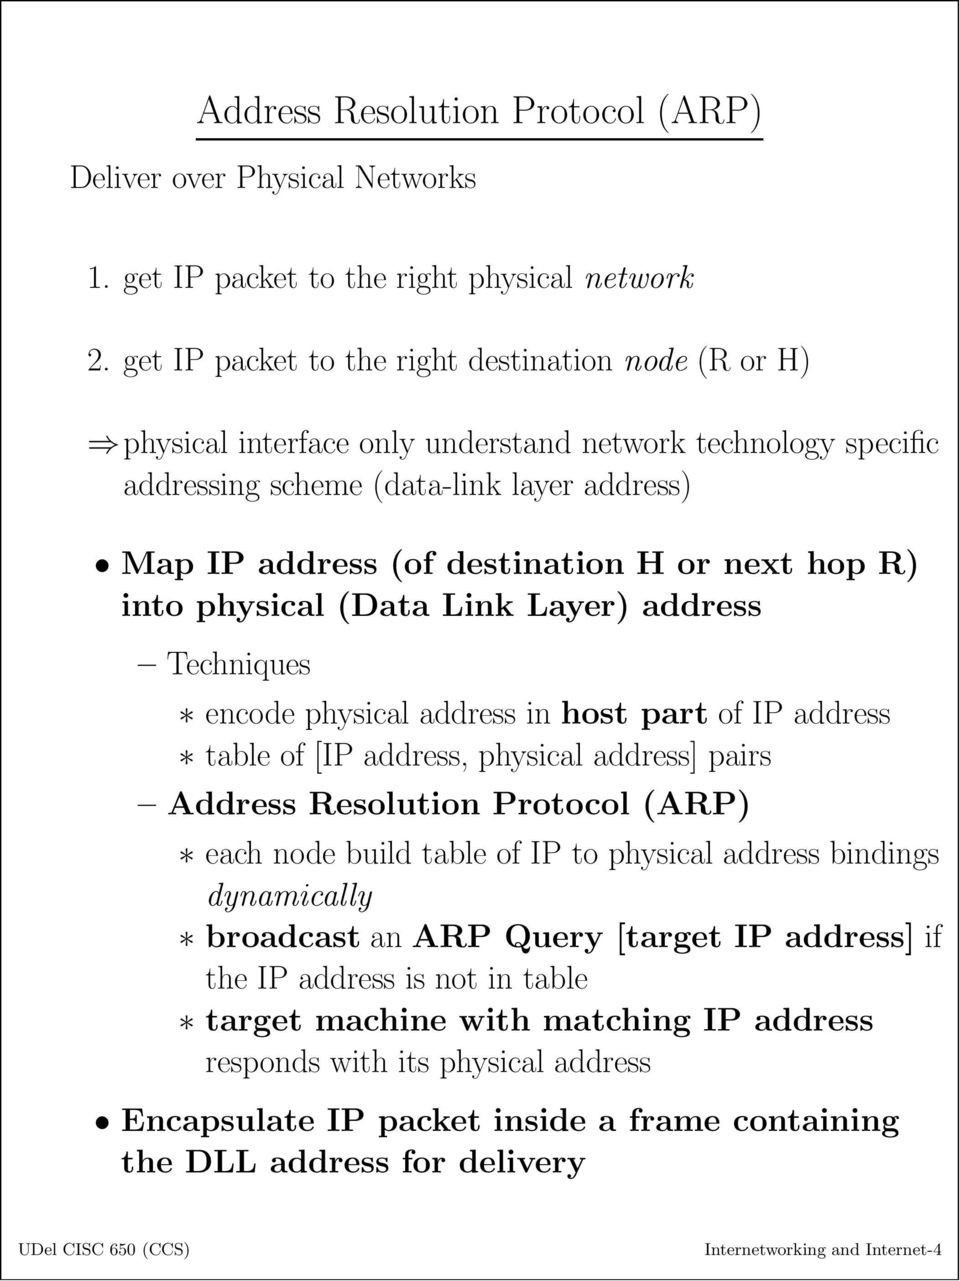 next hop R) into physical (Data Link Layer) address Techniques encode physical address in host part of IP address table of [IP address, physical address] pairs AddressResolutionProtocol(ARP) each